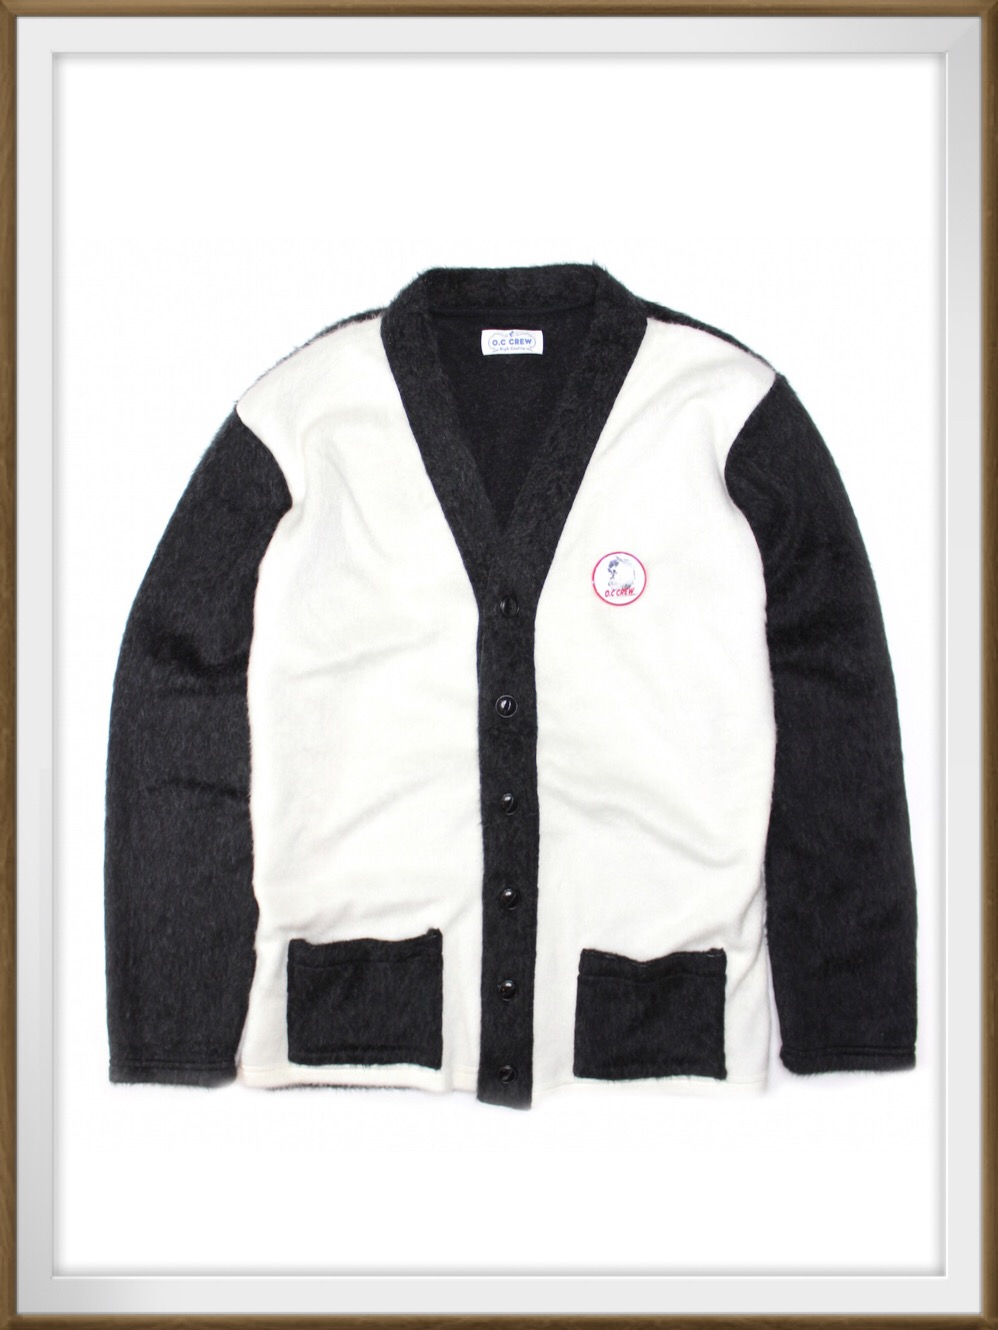 【O.C CREW】 COURTNEY CARDIGAN_c0289919_18572031.jpg